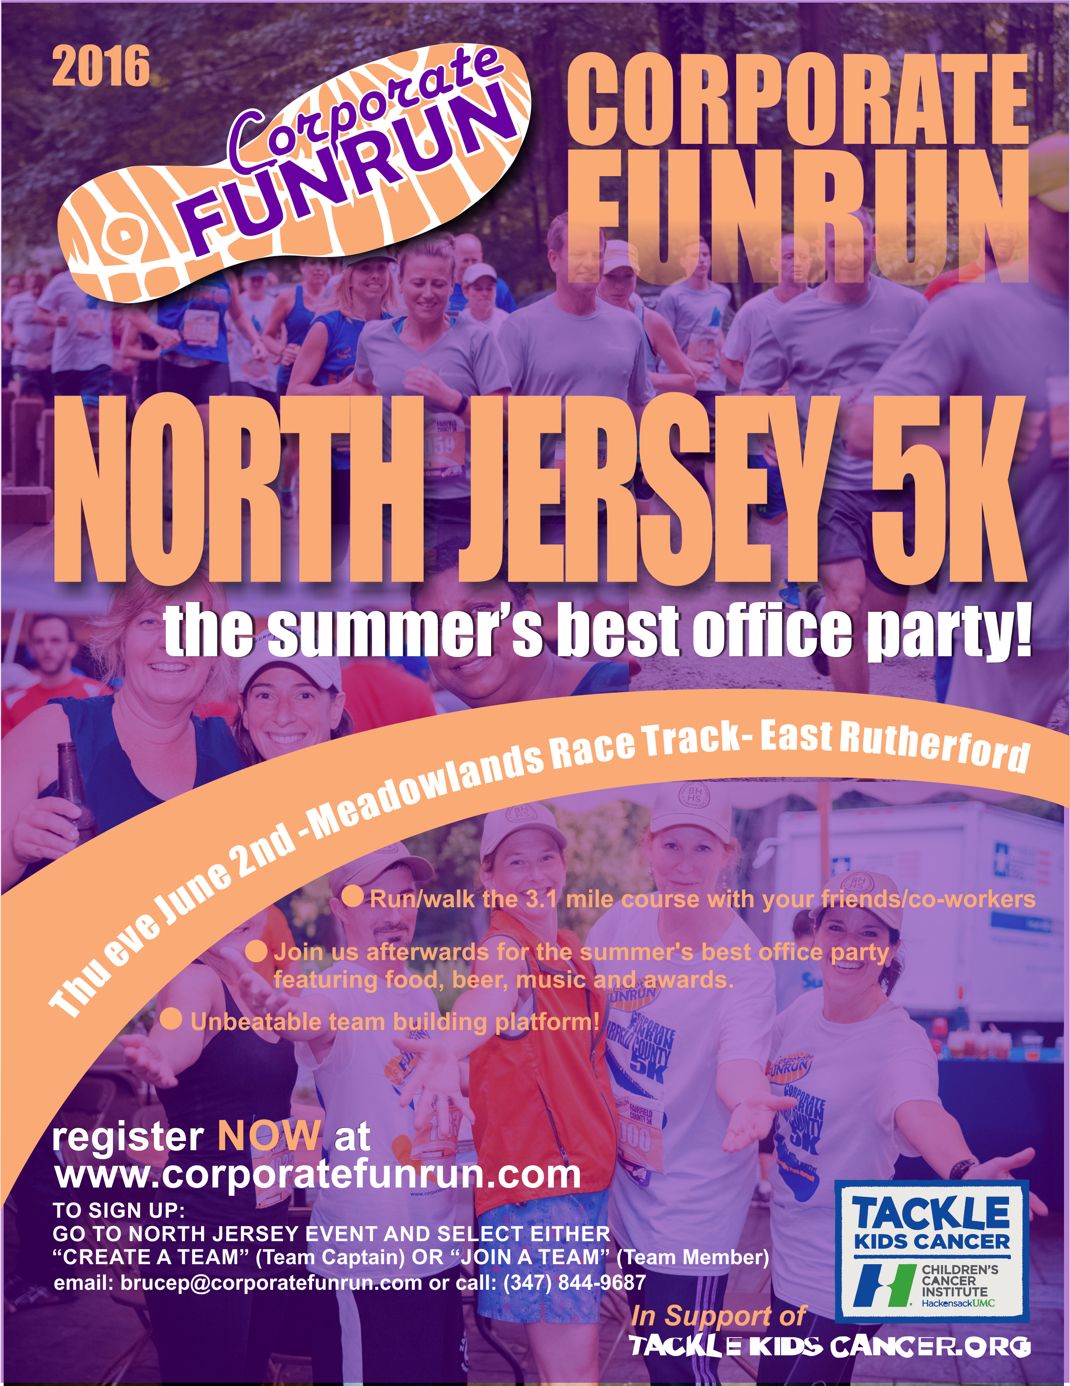 north jersey race flyer corporate funrun